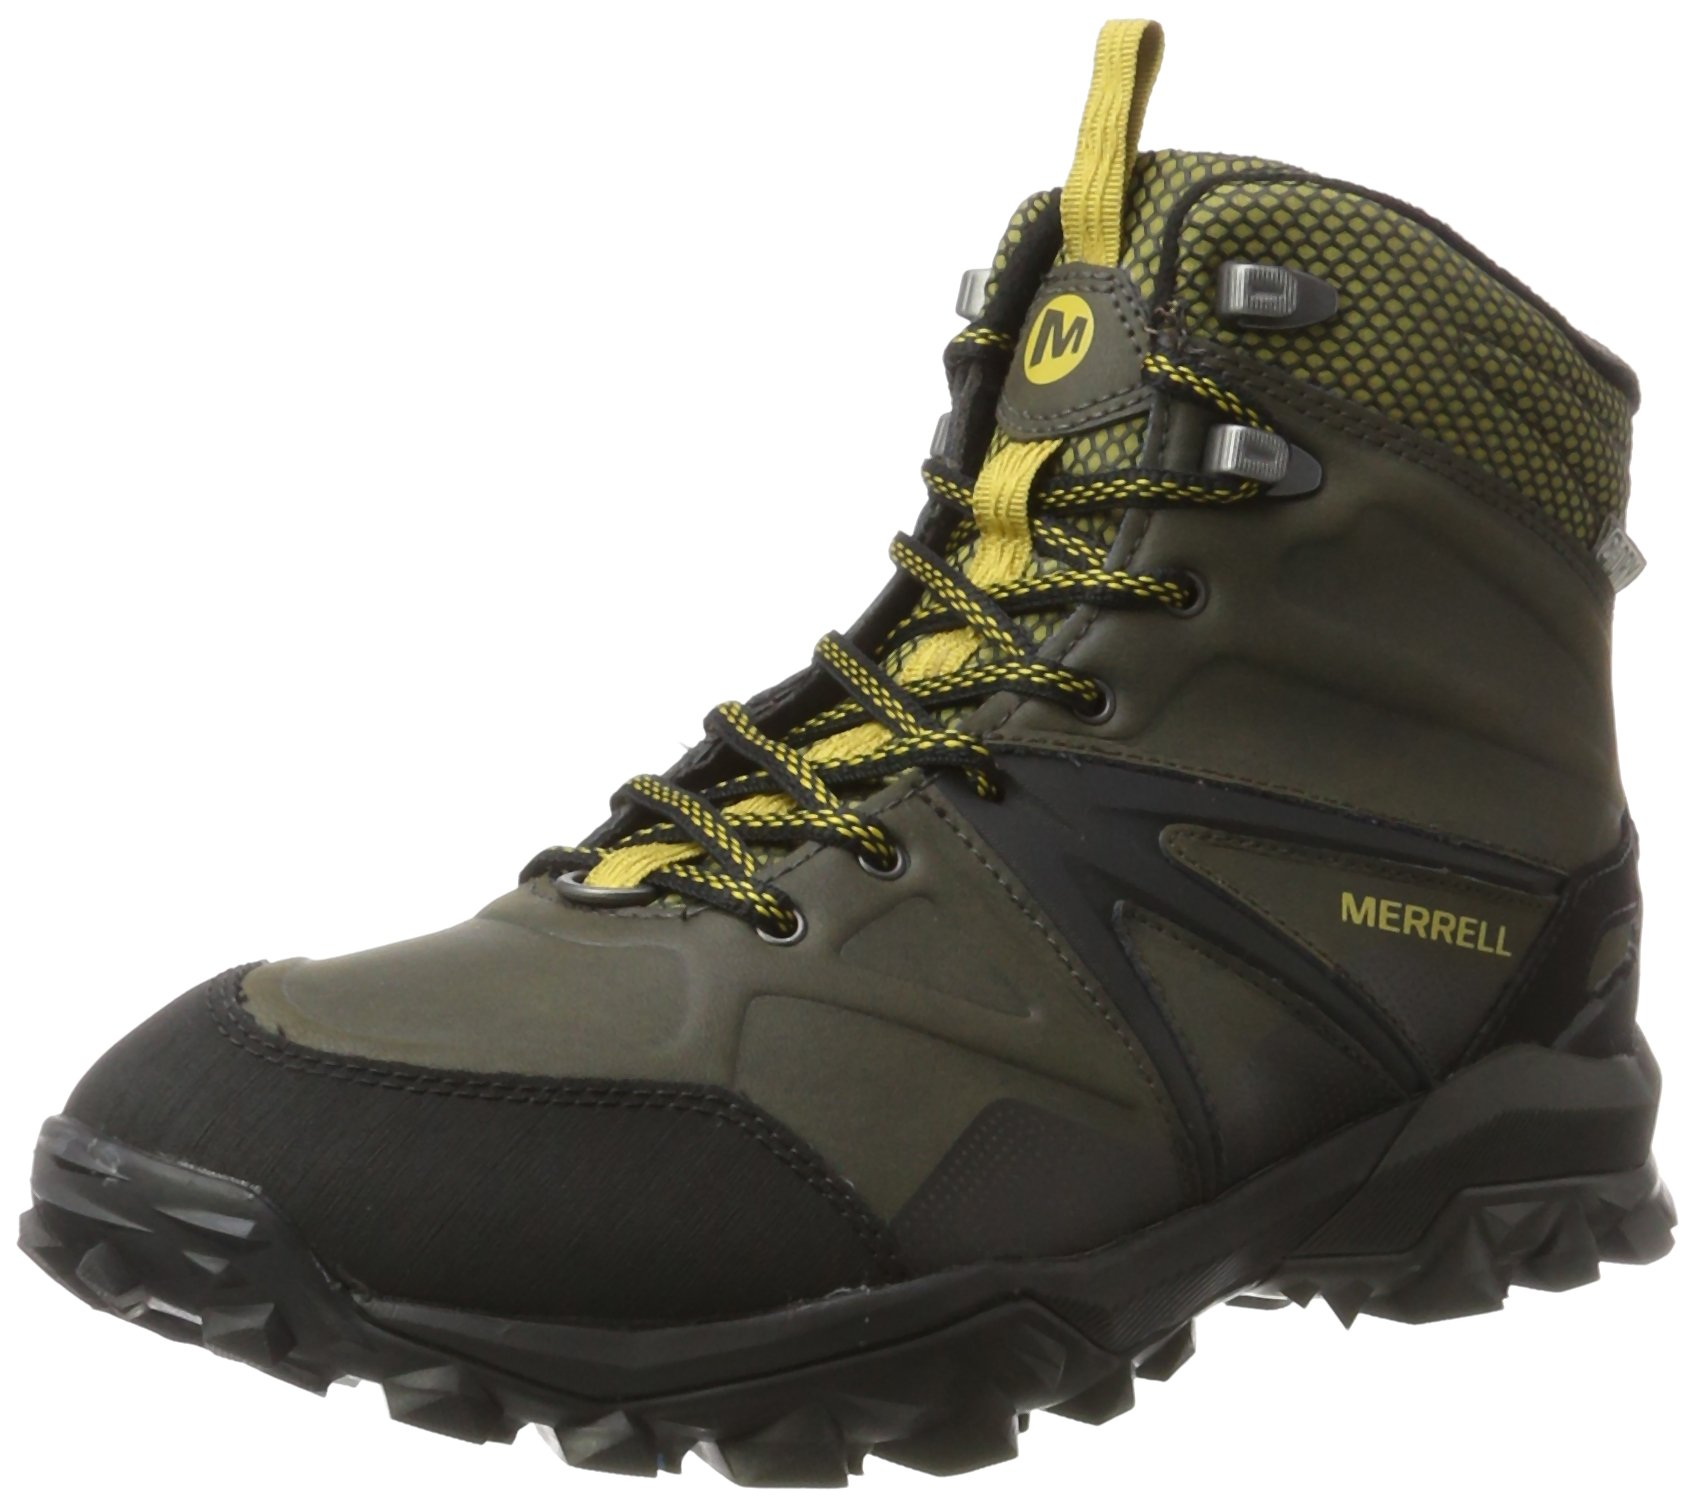 new arrival outlet boutique largest selection of 2019 Merrell Men's Capra Glacial Ice+ Mid Waterproof High Rise Hiking Boots